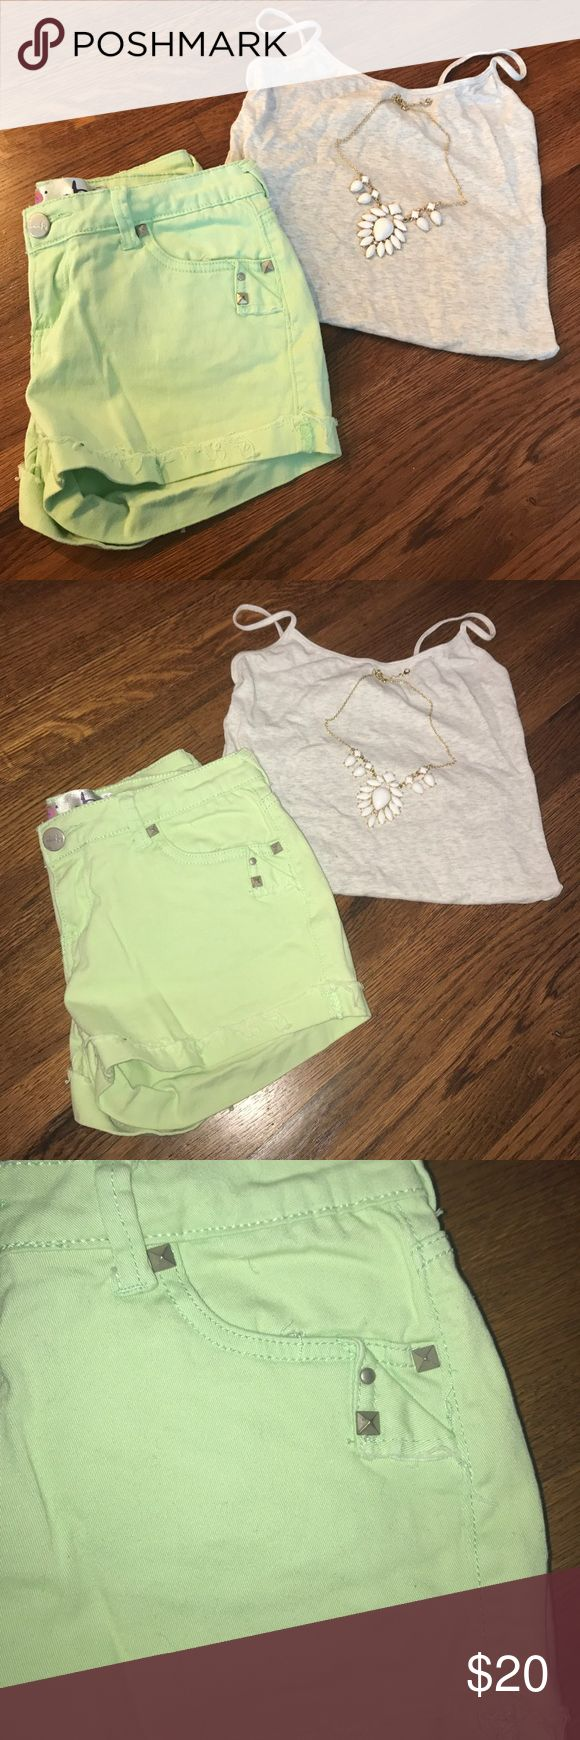 Mint green Jean Shorts Mint green Jean Shorts. Worn only a handful of times and in great condition. Has some stud detailing Shorts Jean Shorts